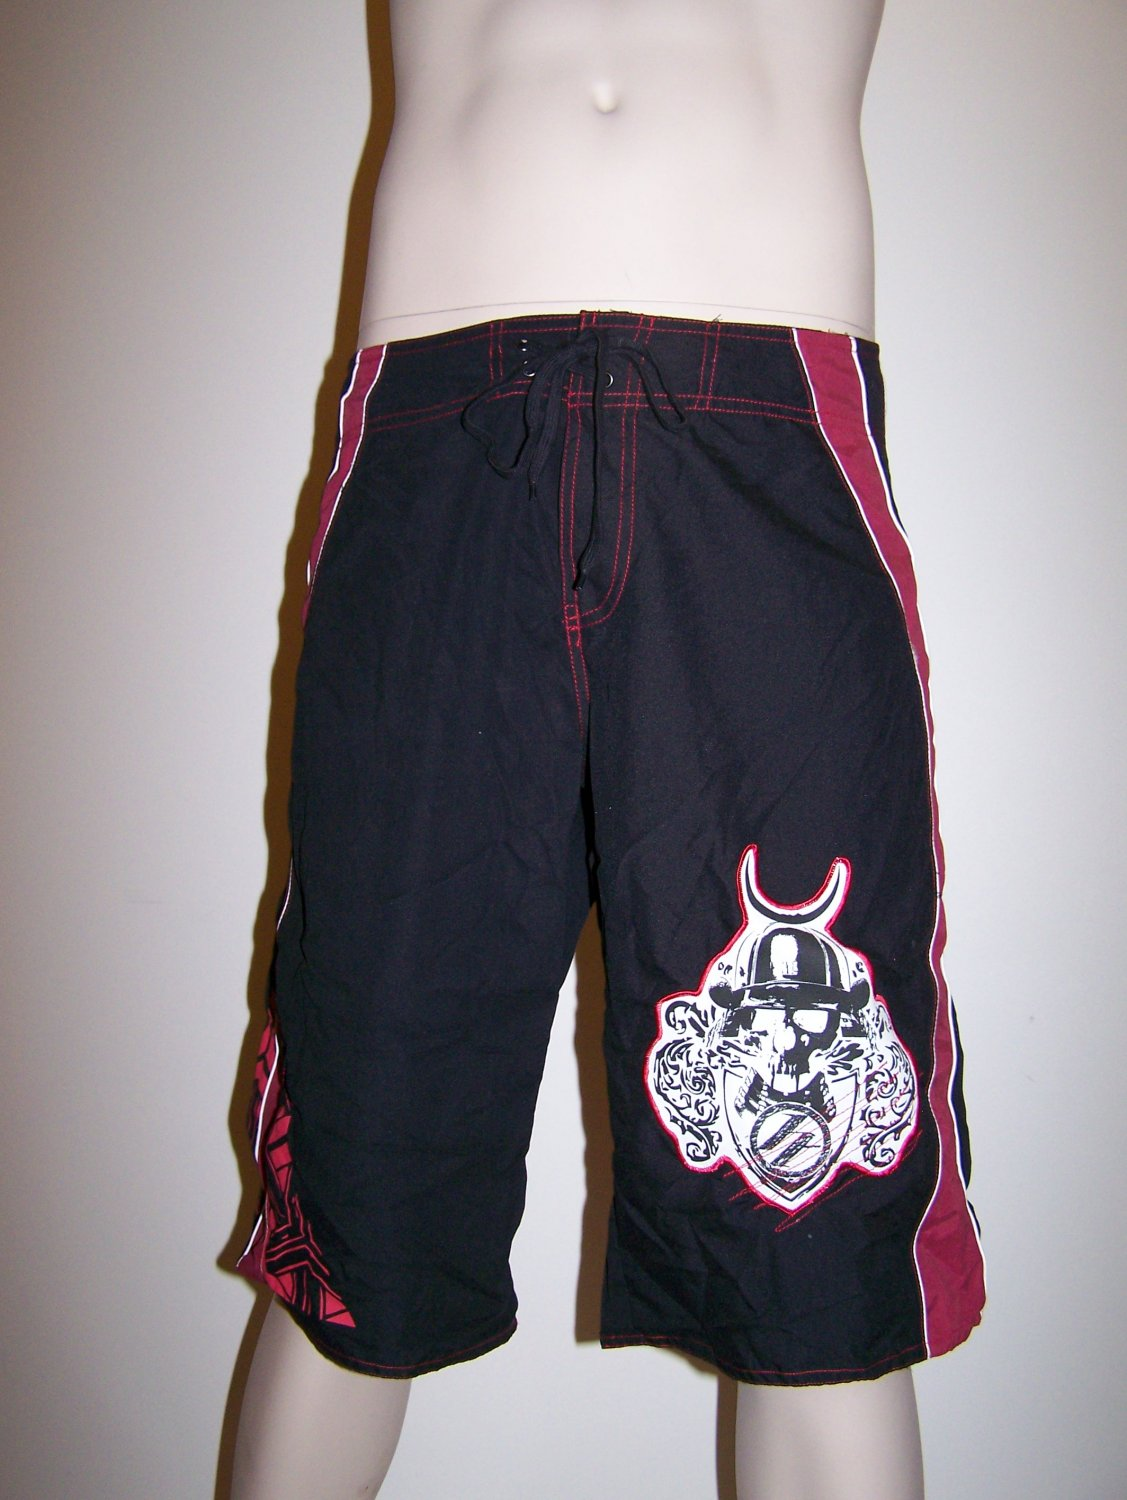 Hybrid Contract Killer - Fighting Shorts - Tophat Skull - XL